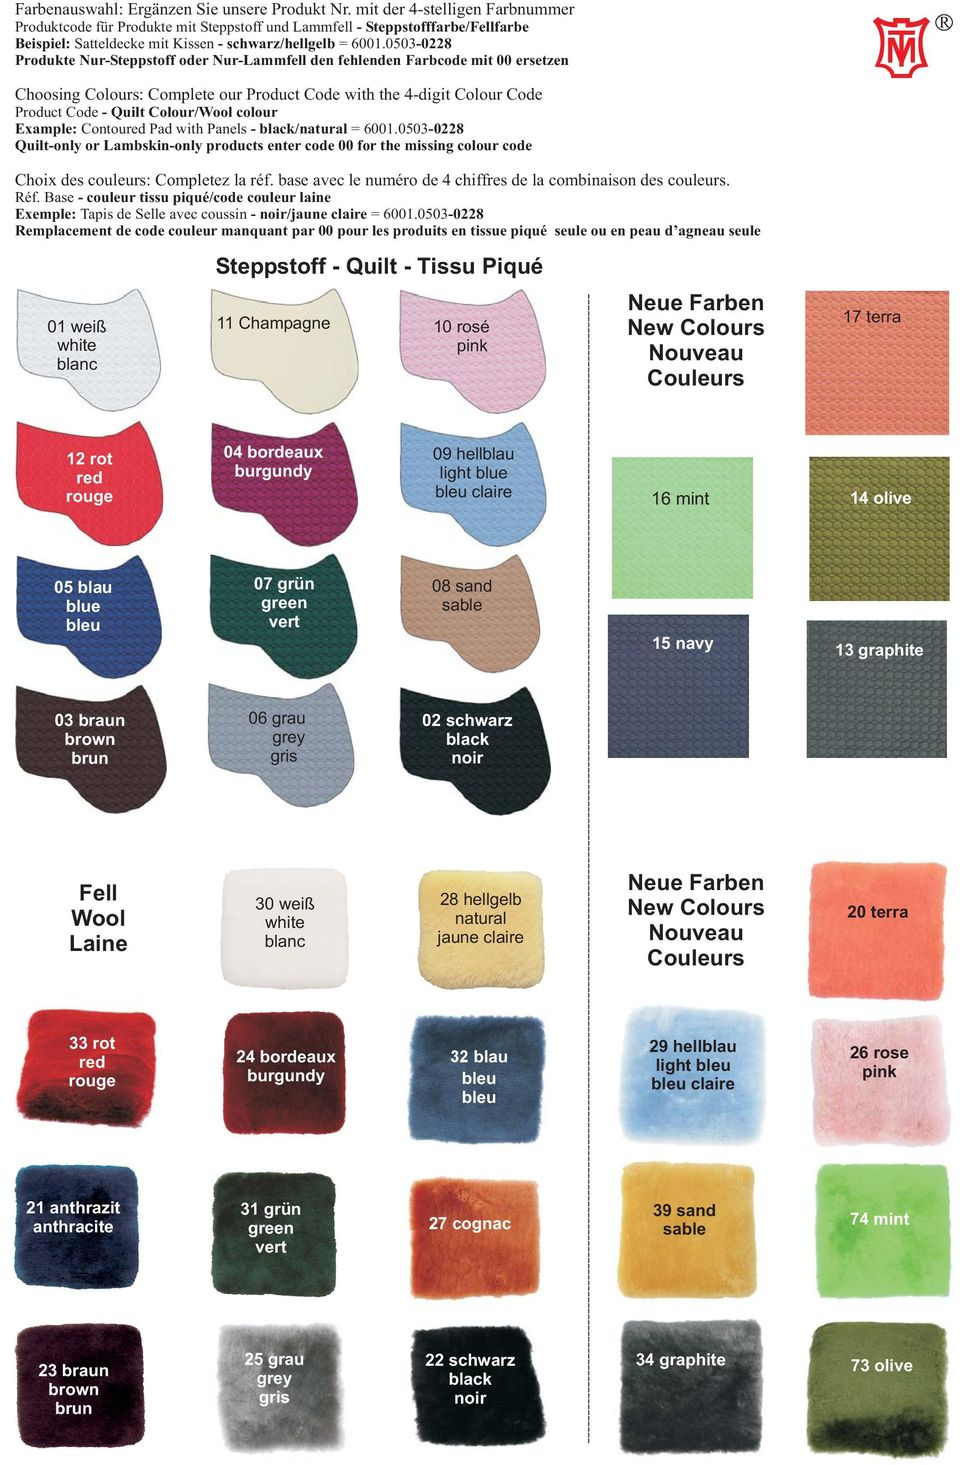 0503-0228 Produkte Nur-Steppstoff oder Nur-Lammfell den fehlenden Farbcode mit 00 ersetzen Choosing Colours: Complete our Product Code with the 4-digit Colour Code Product Code - Quilt Colour/Wool